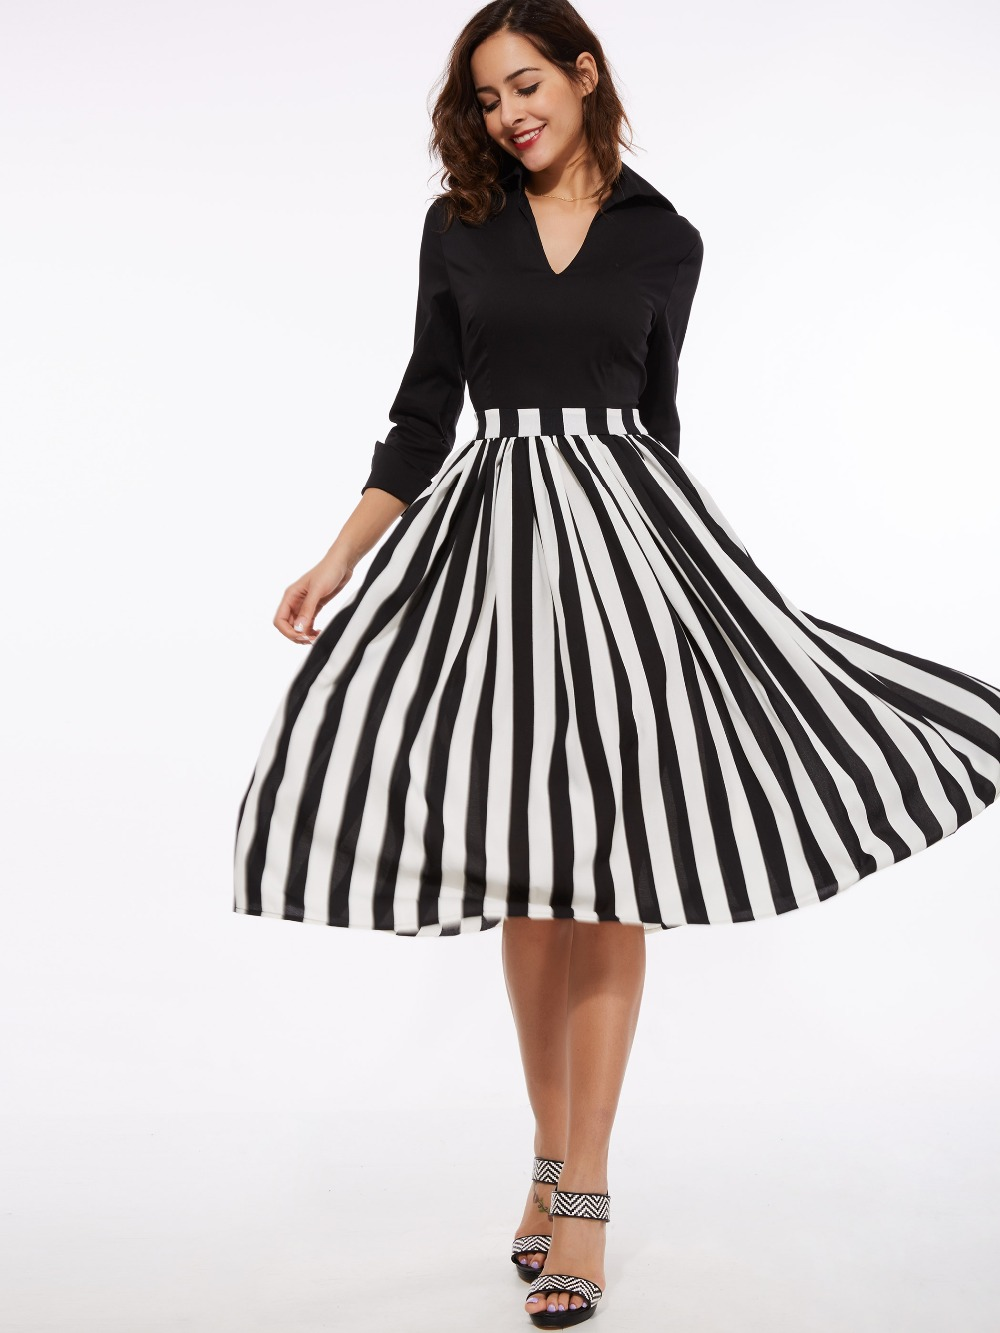 Find great deals on eBay for Womens A Line Dress in Elegant Dresses for Women. Shop with confidence.